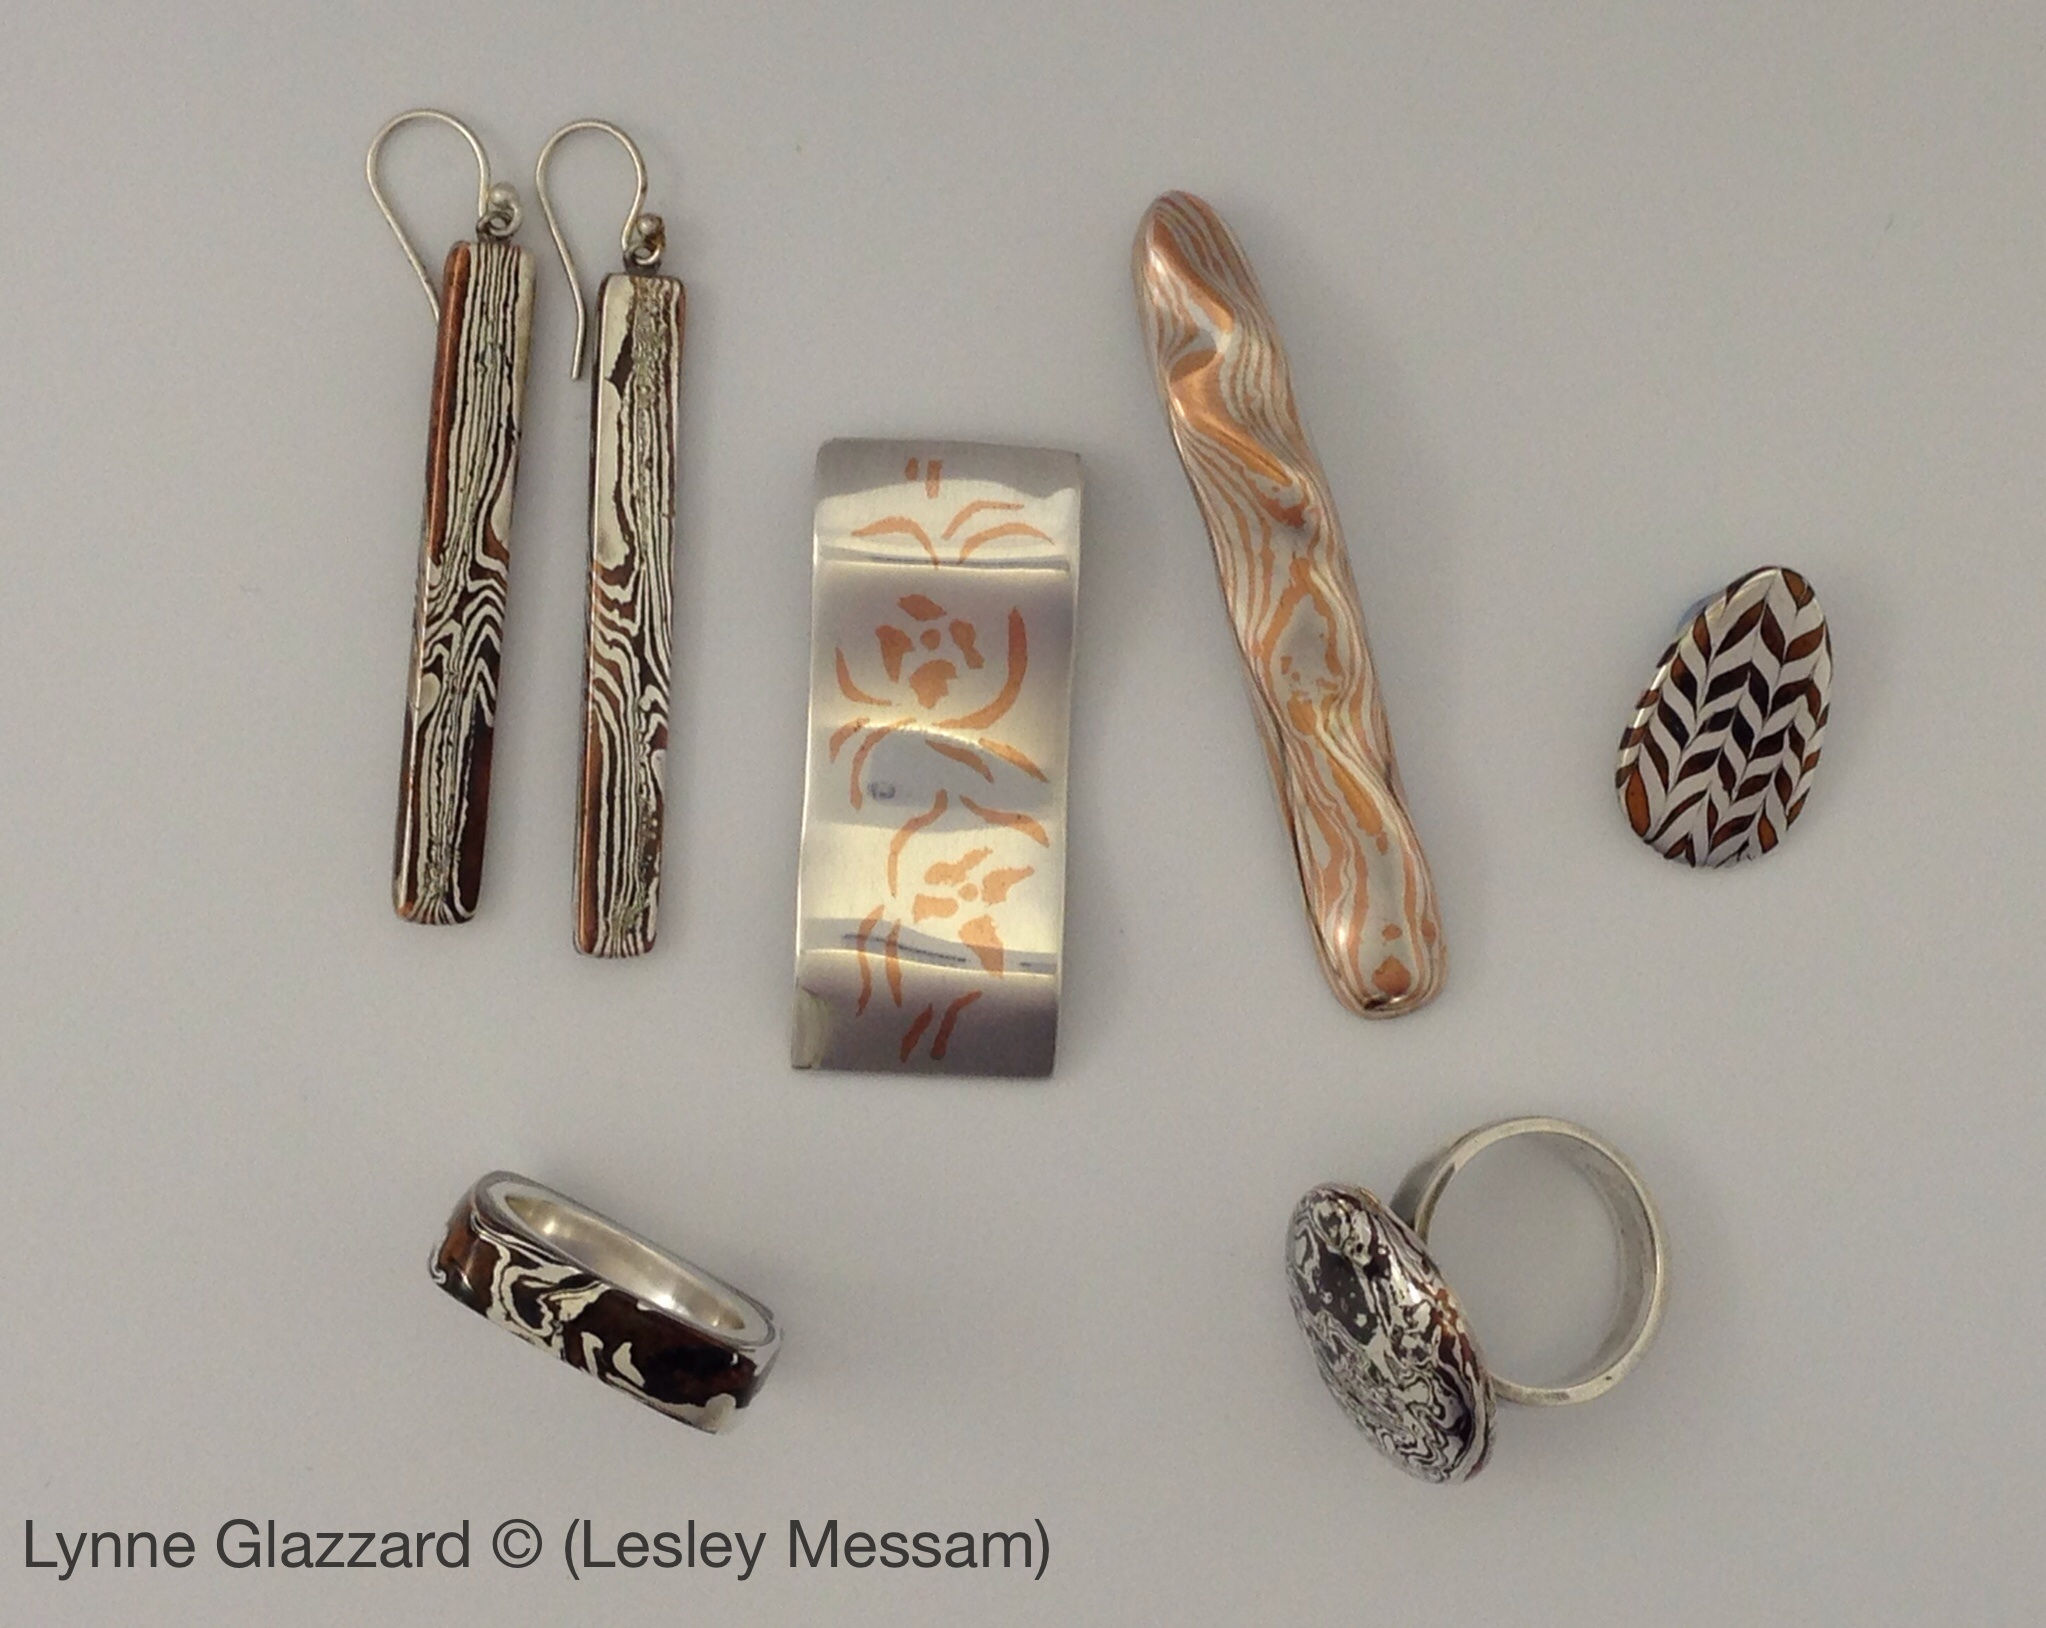 New mokume gane certification metal clay north pendant in silver with copper inlay zougan 2 brooch with wood grain guri bori 3 pendant or earrings with cross technique jyumonji aloadofball Gallery